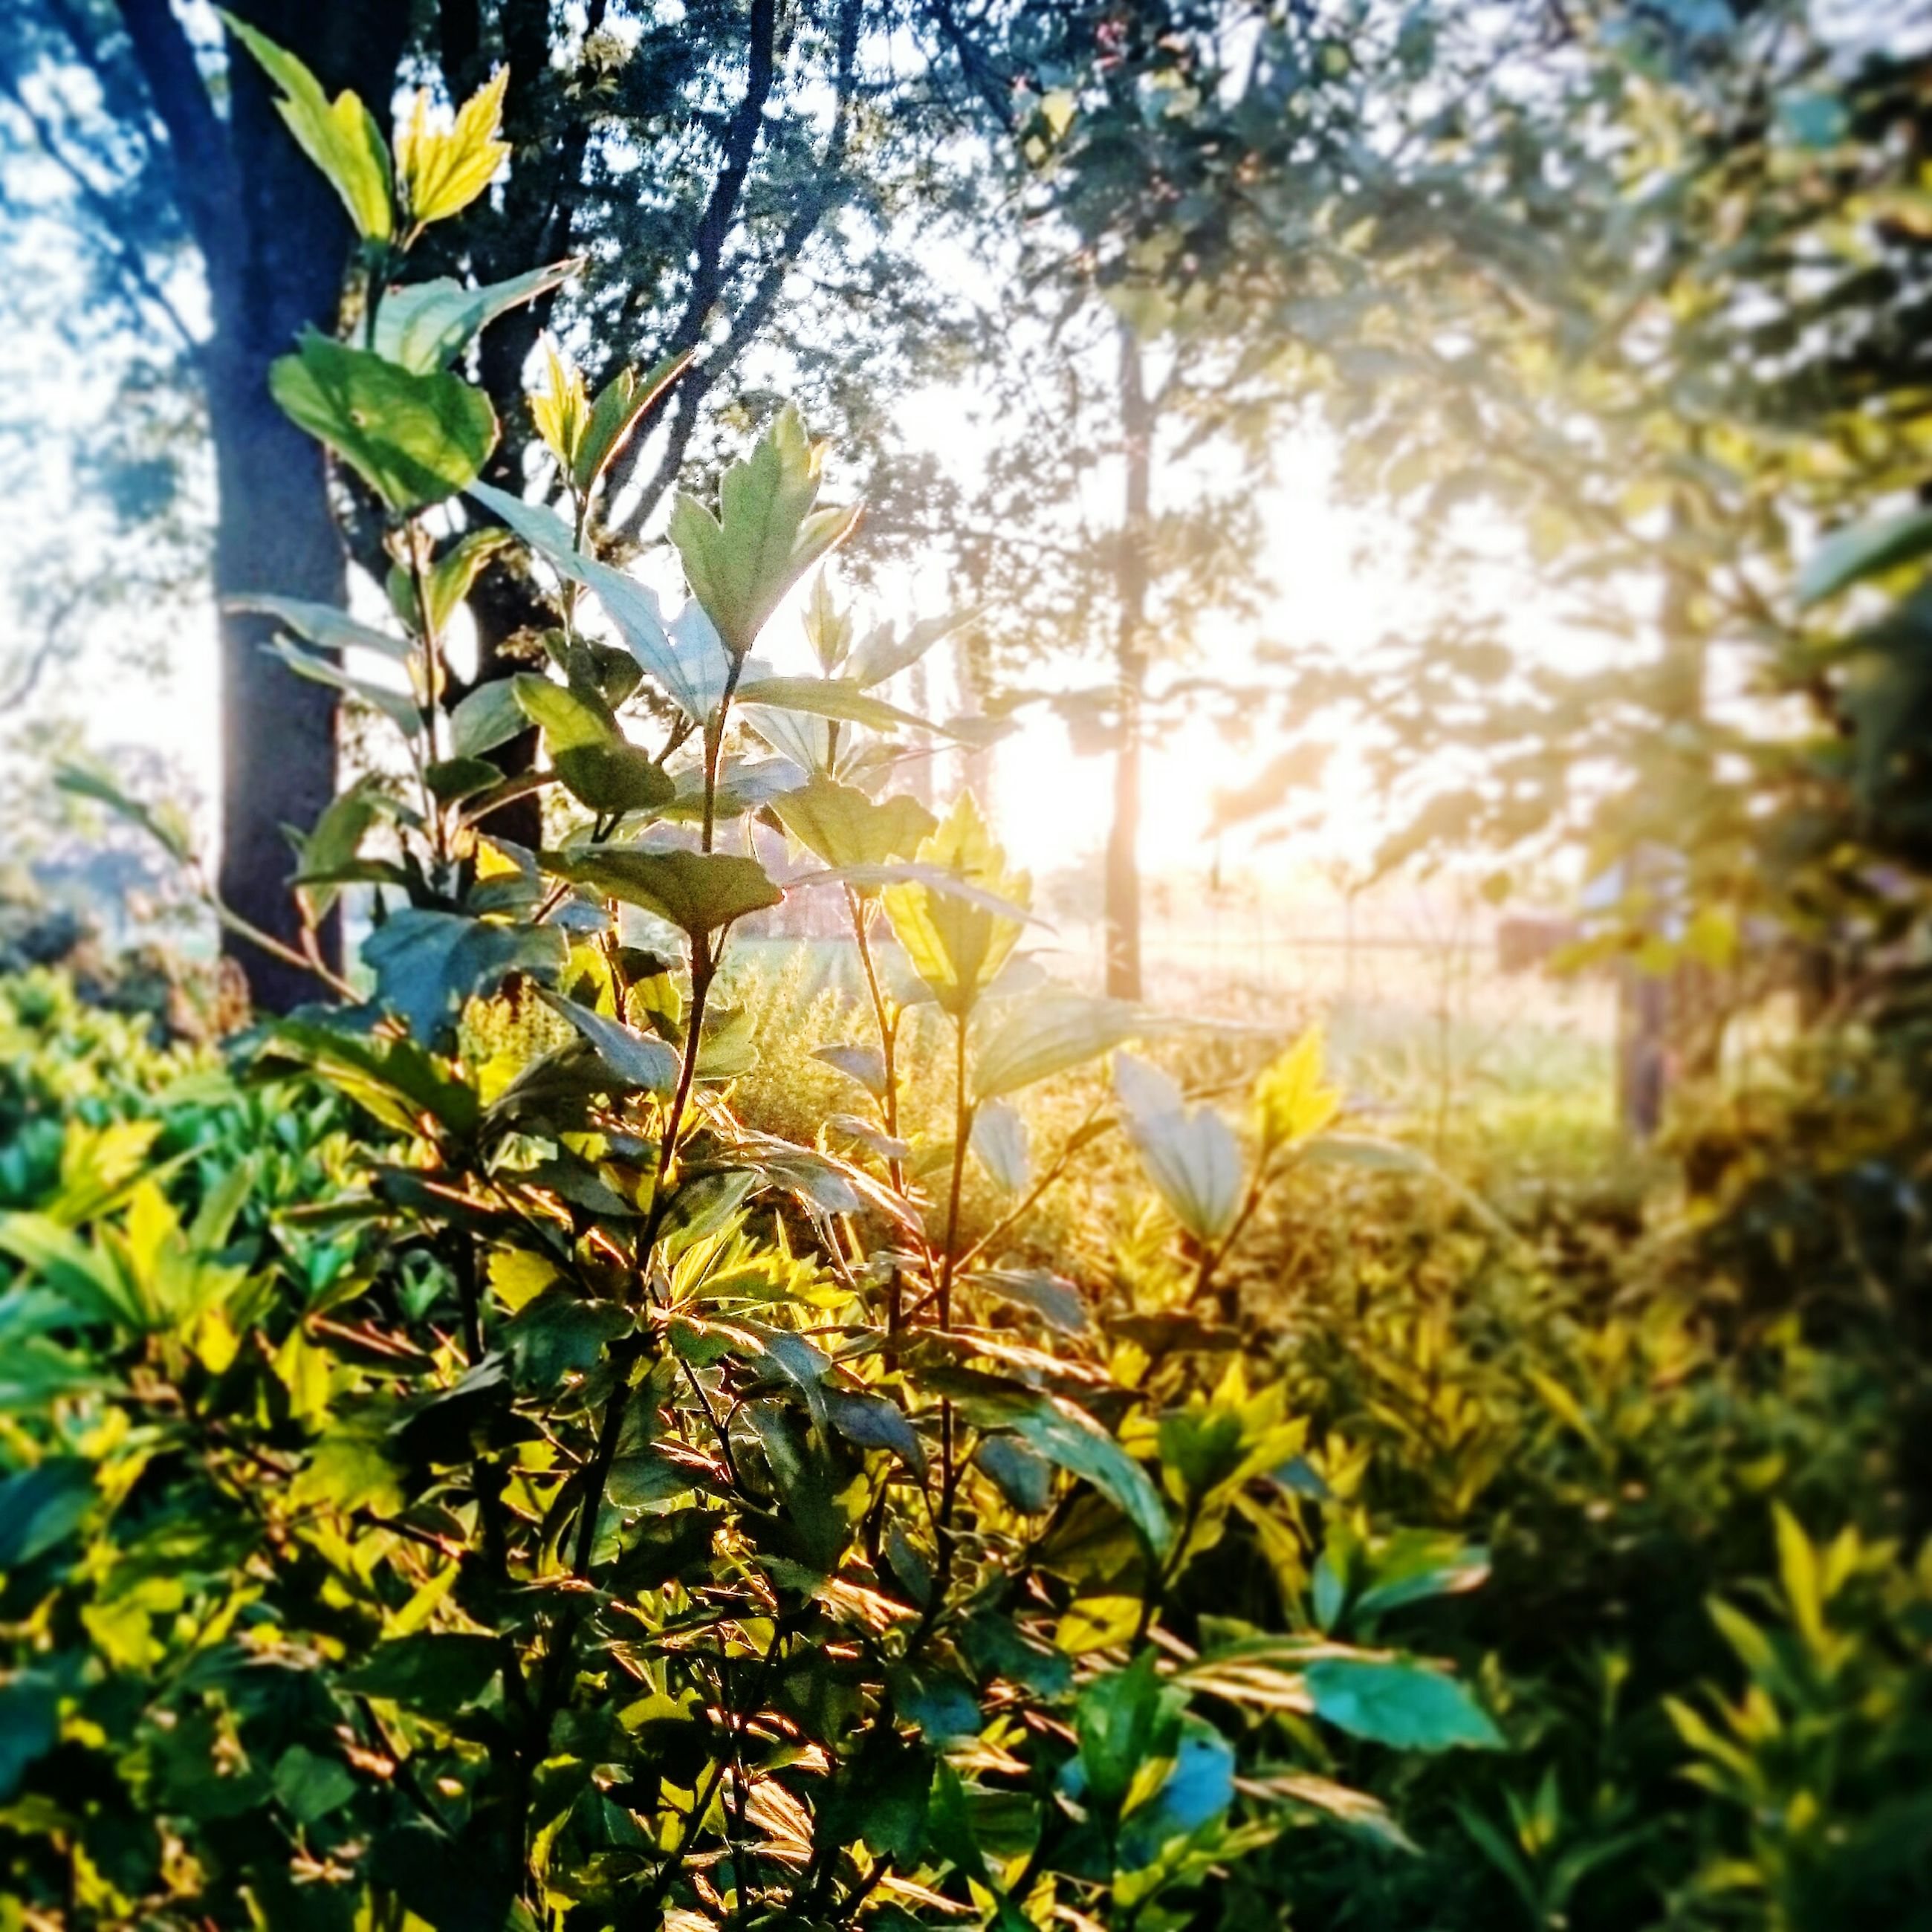 growth, sun, sunlight, tree, sunbeam, nature, leaf, beauty in nature, tranquility, plant, branch, green color, lens flare, tranquil scene, sky, scenics, field, sunny, focus on foreground, no people